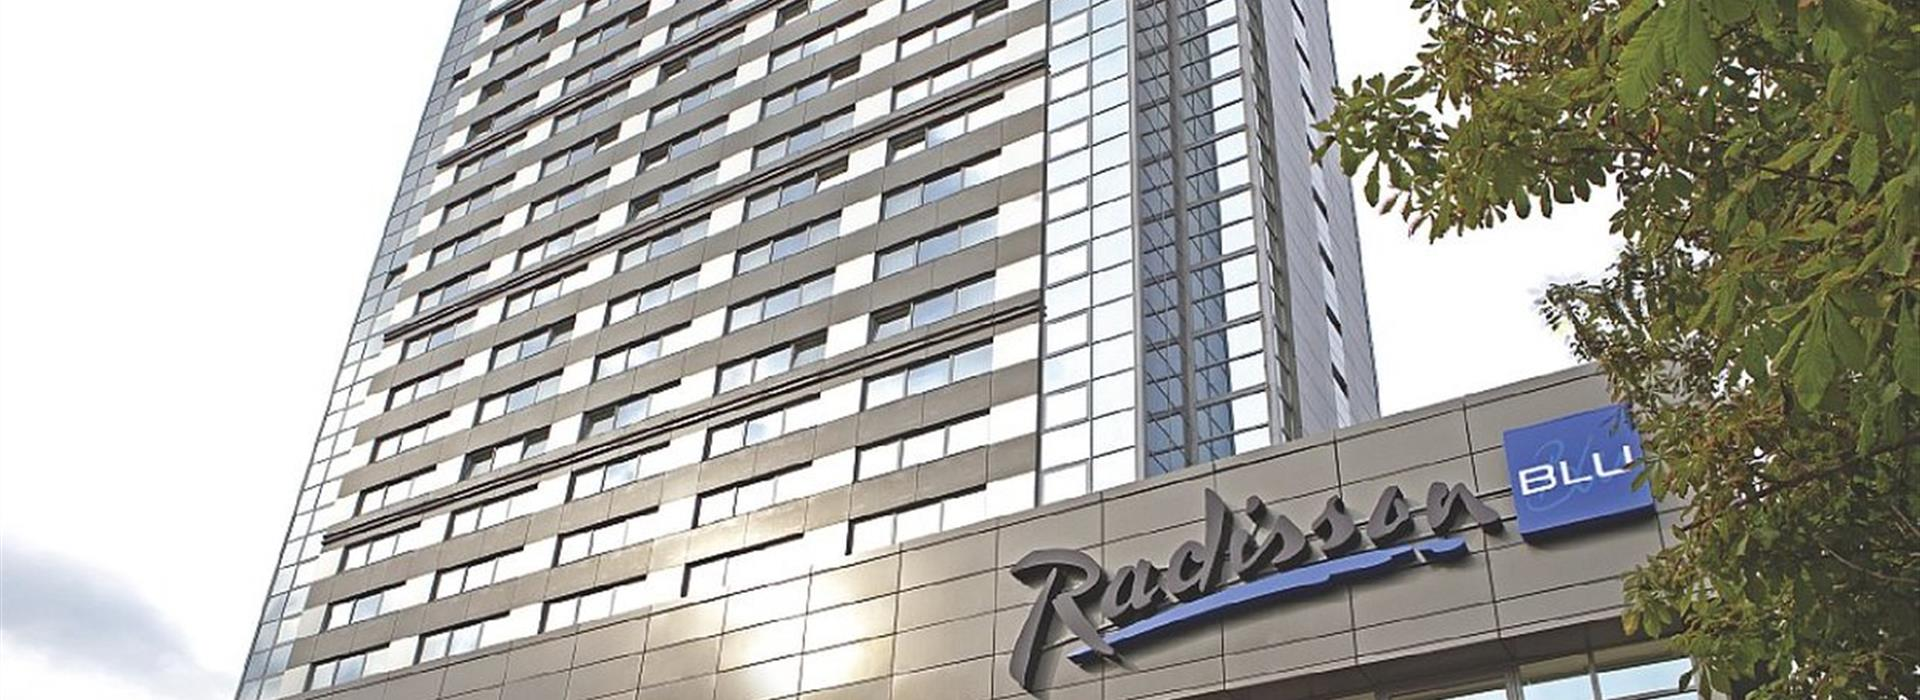 Radisson-Blu-Glasgow